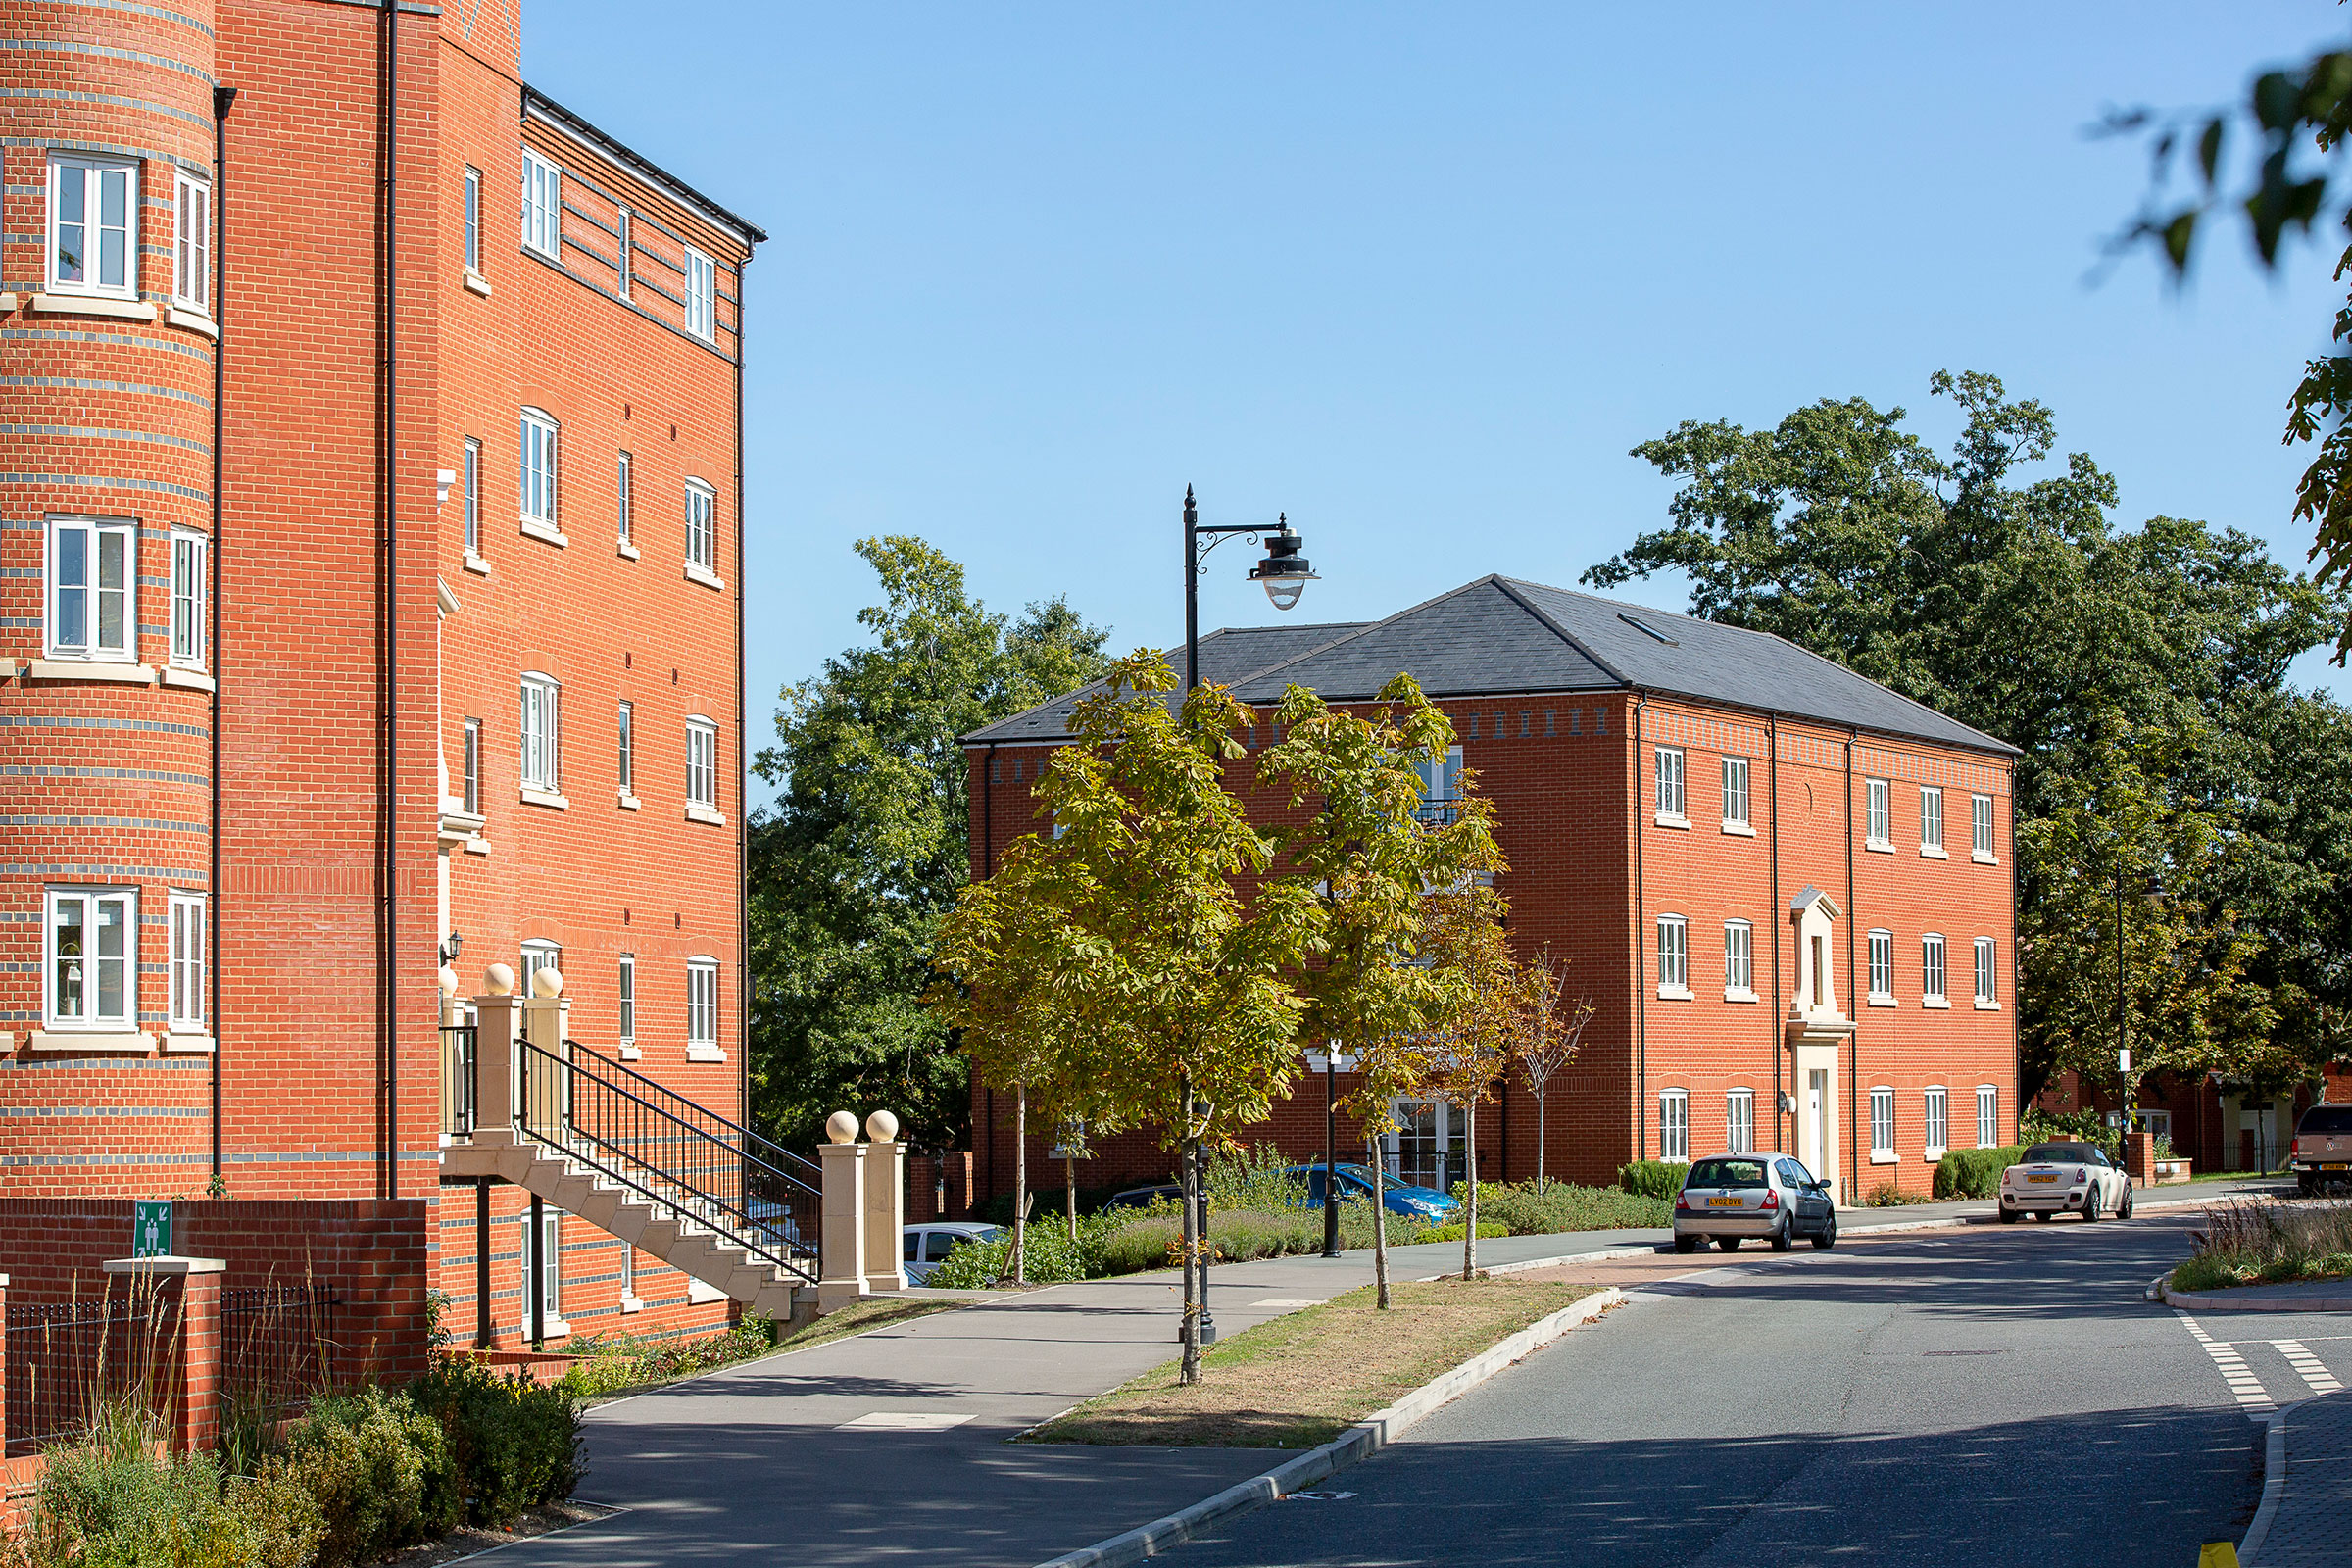 Urban extension of Wellesley in Aldershot, Hampshire